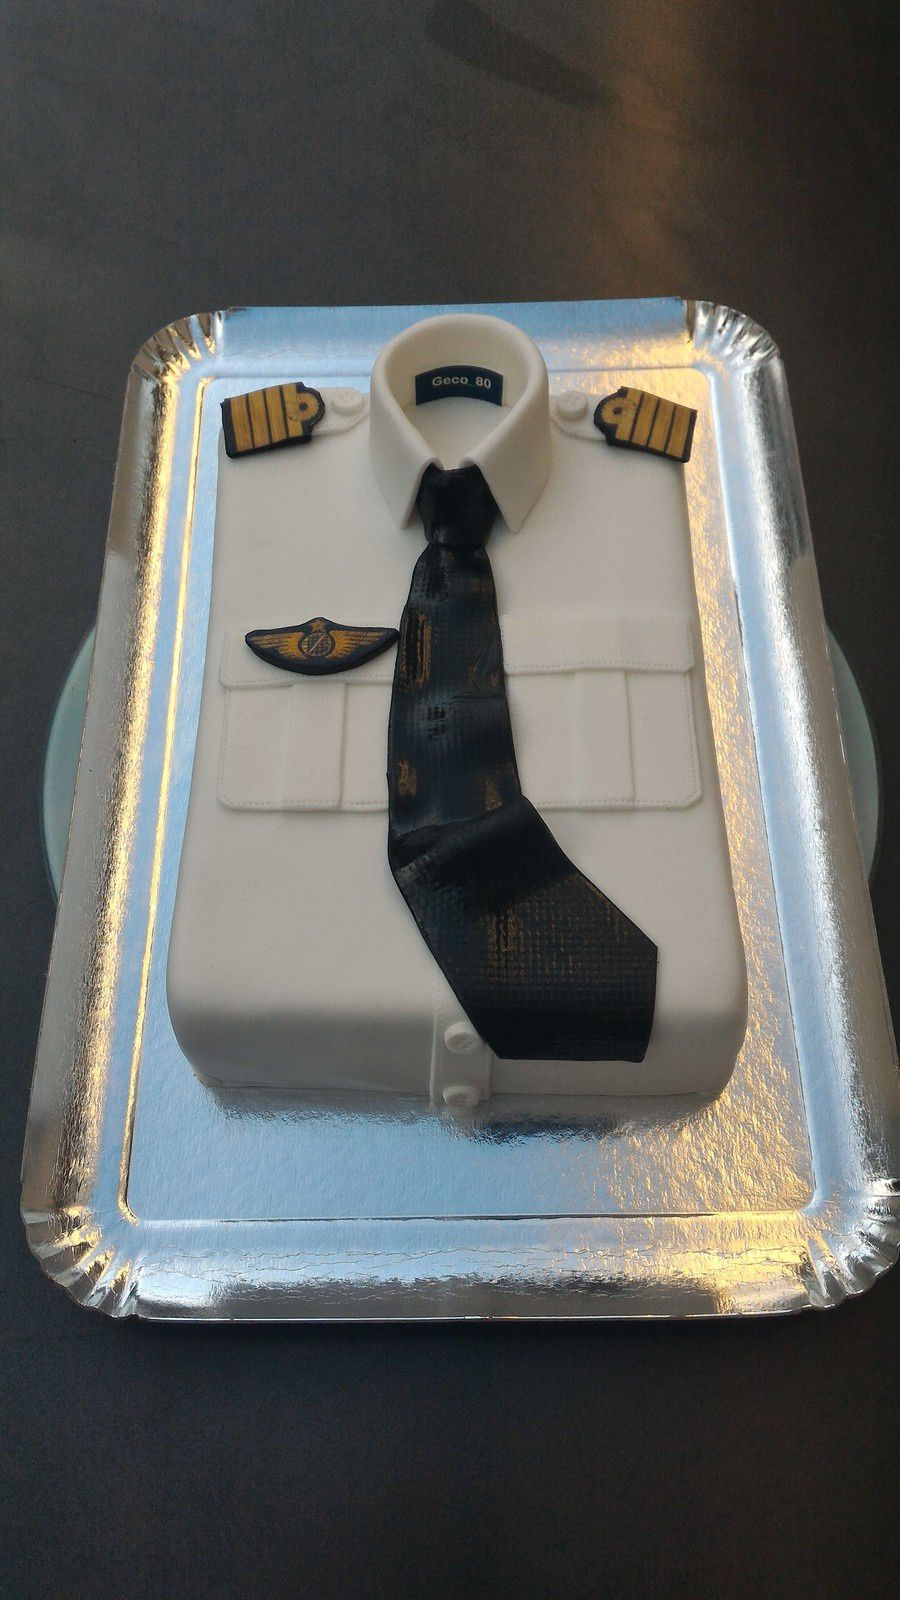 GATEAU CHEMISE DE PILOTE AIR FRANCE